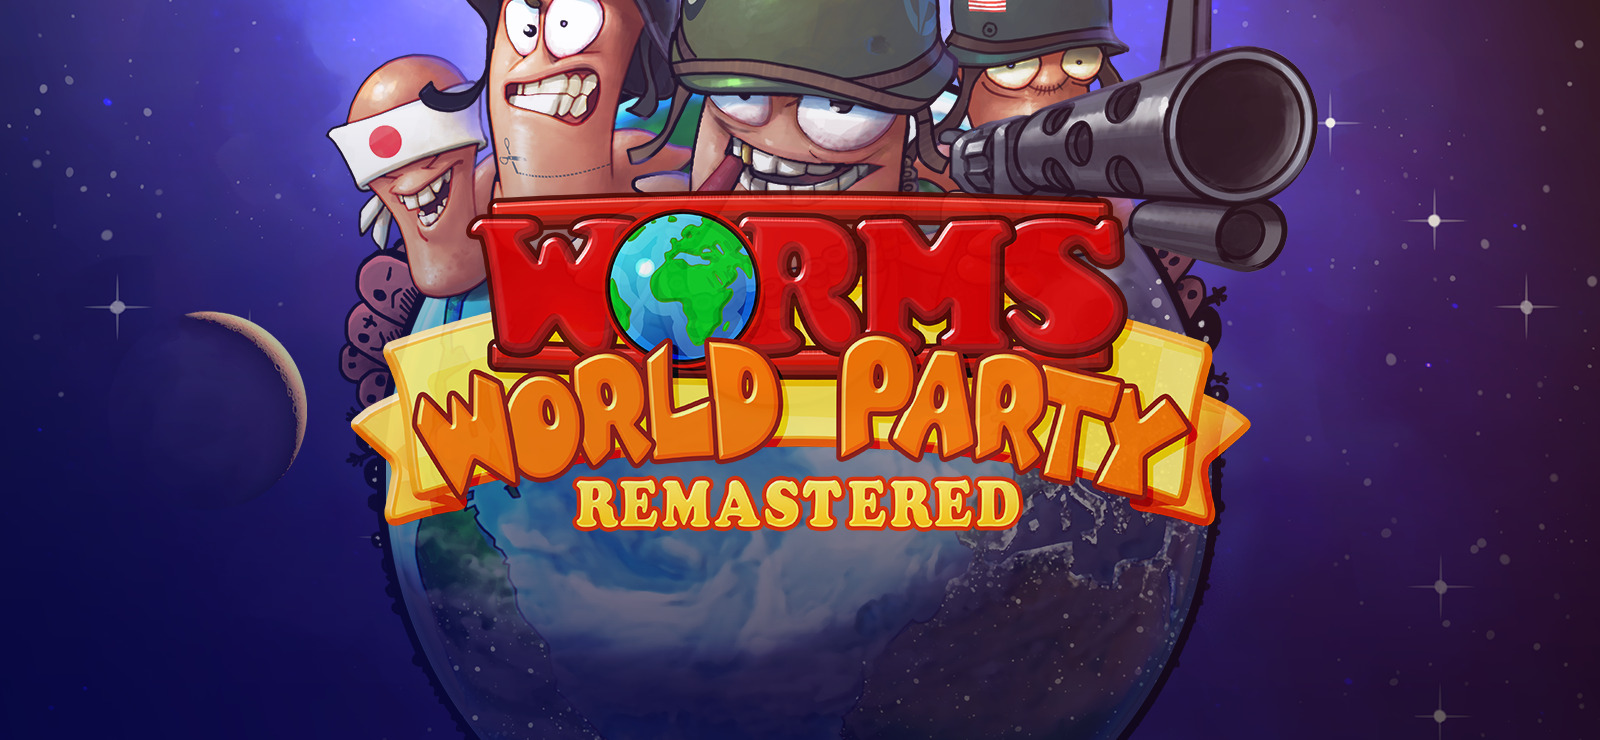 Worms world party remastered on gog gumiabroncs